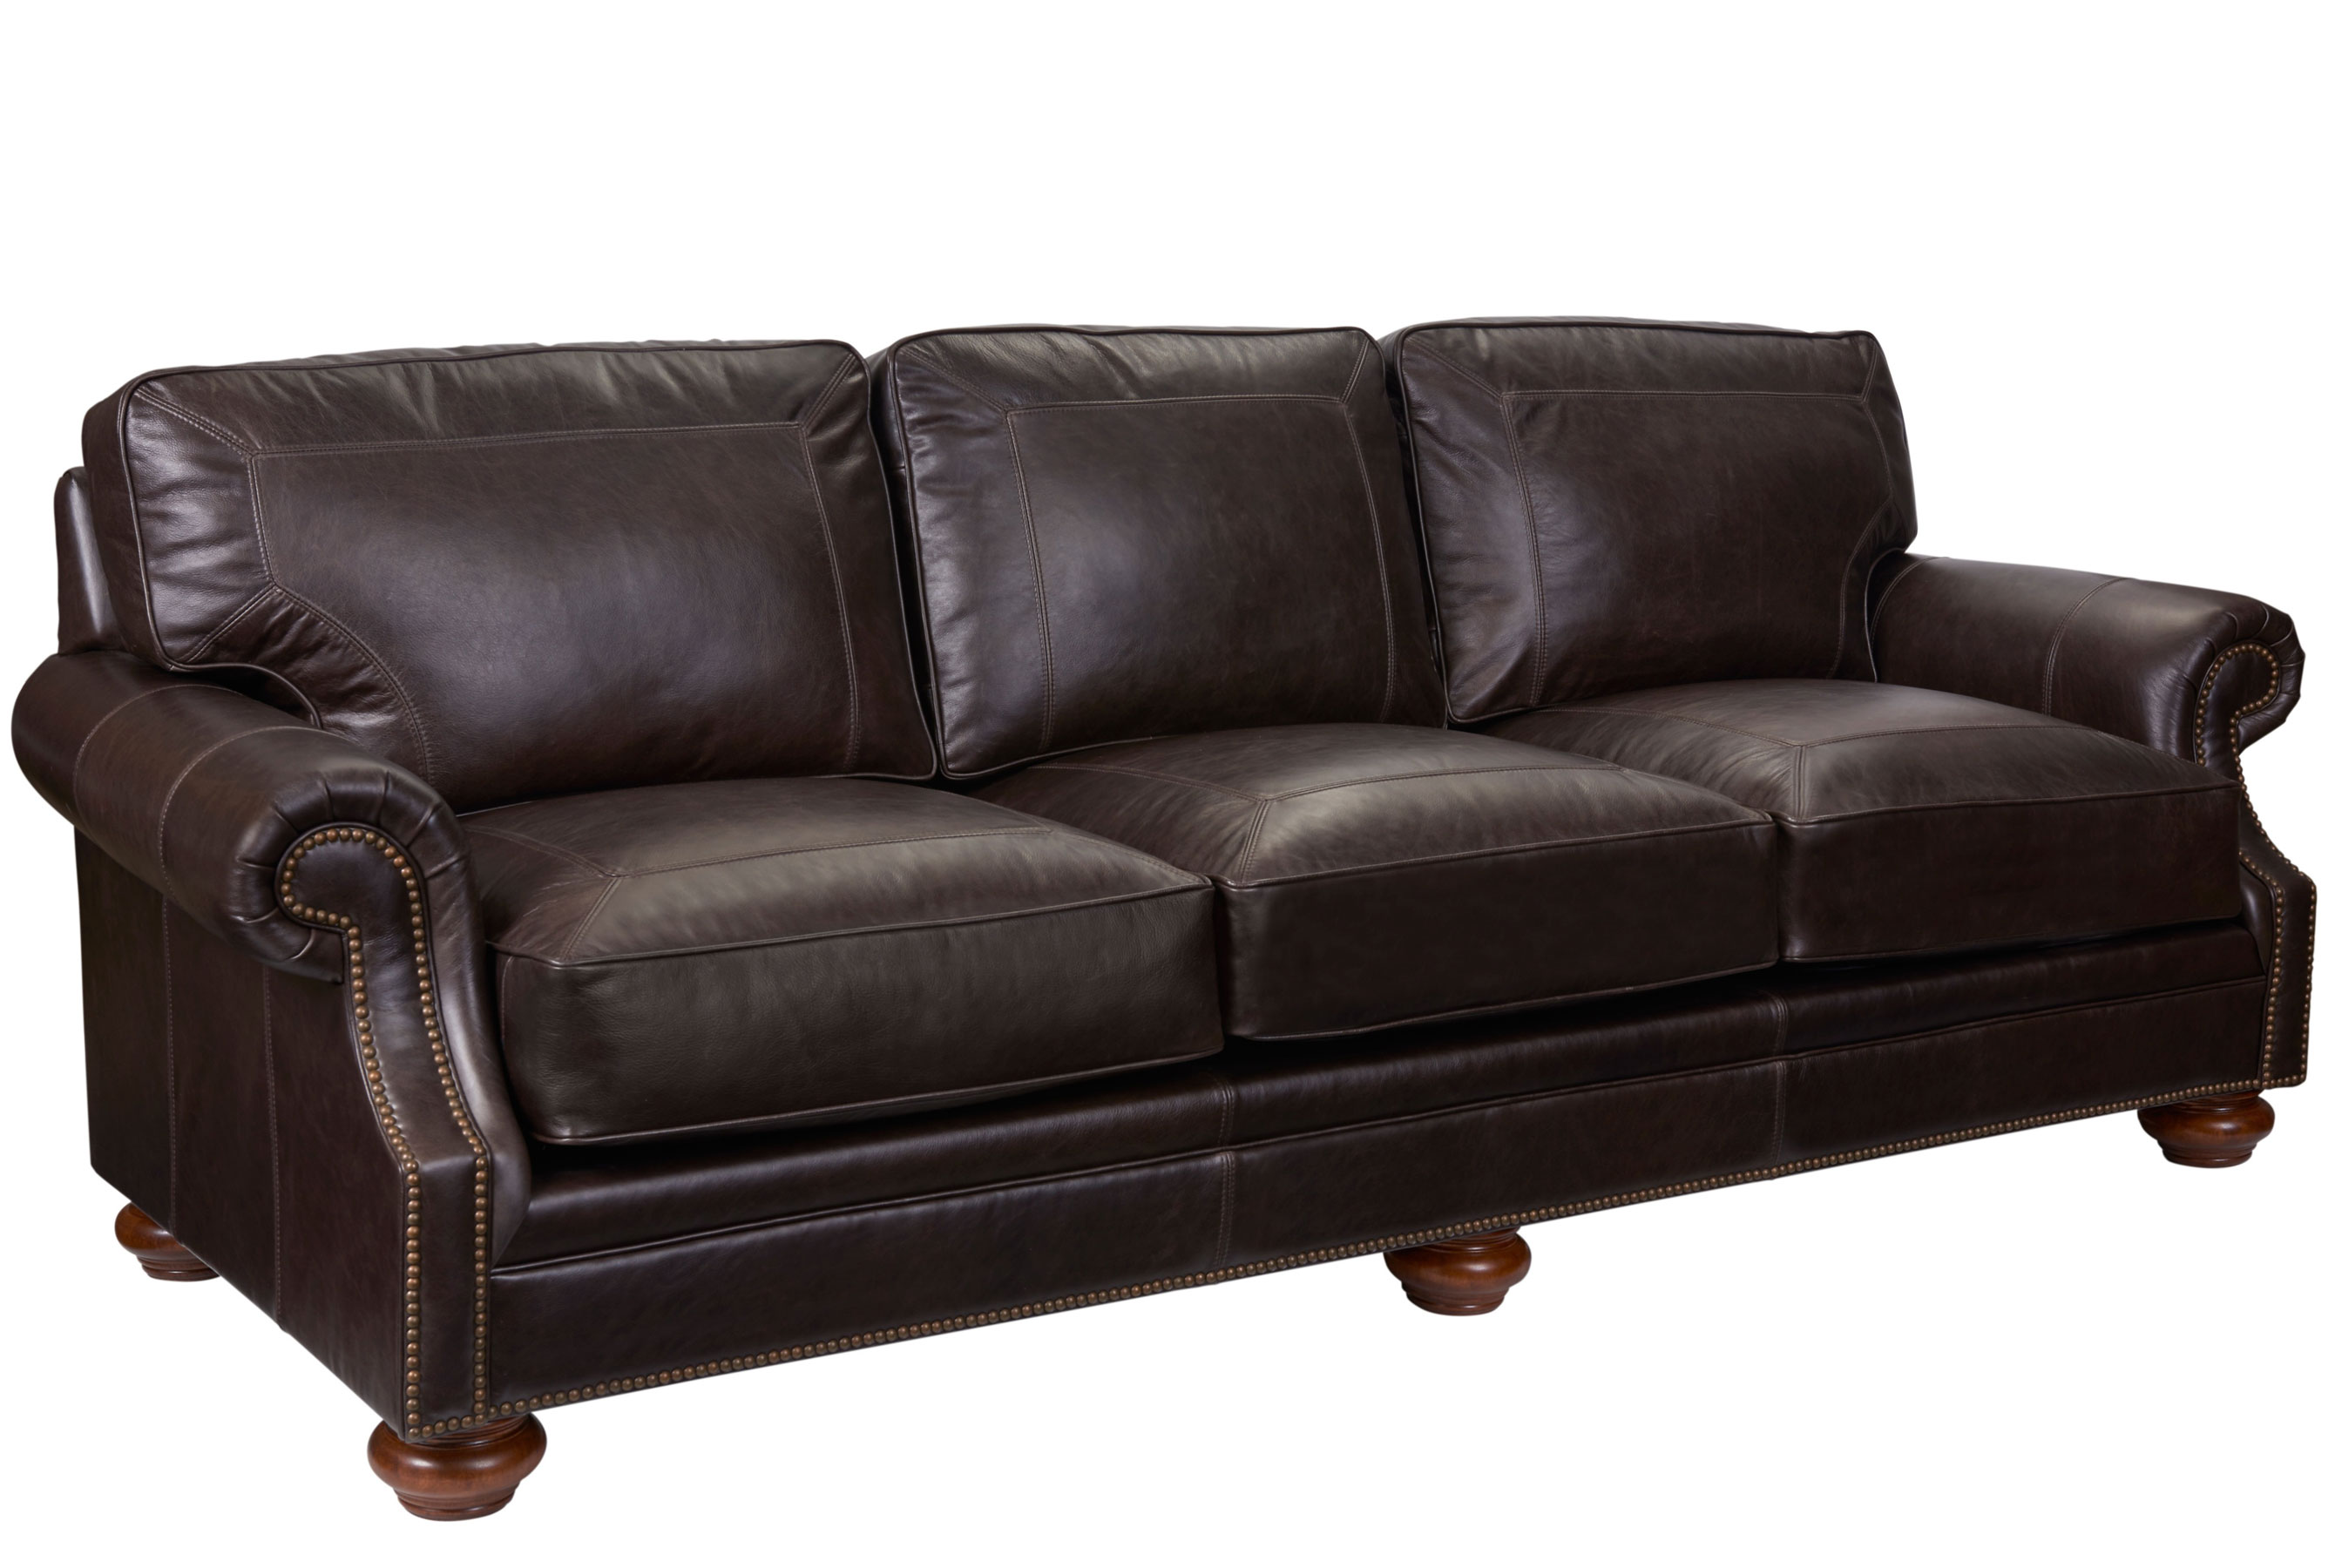 Fantastic Heuer 100 All Leather Sofa Sofas And Sectionals Cjindustries Chair Design For Home Cjindustriesco